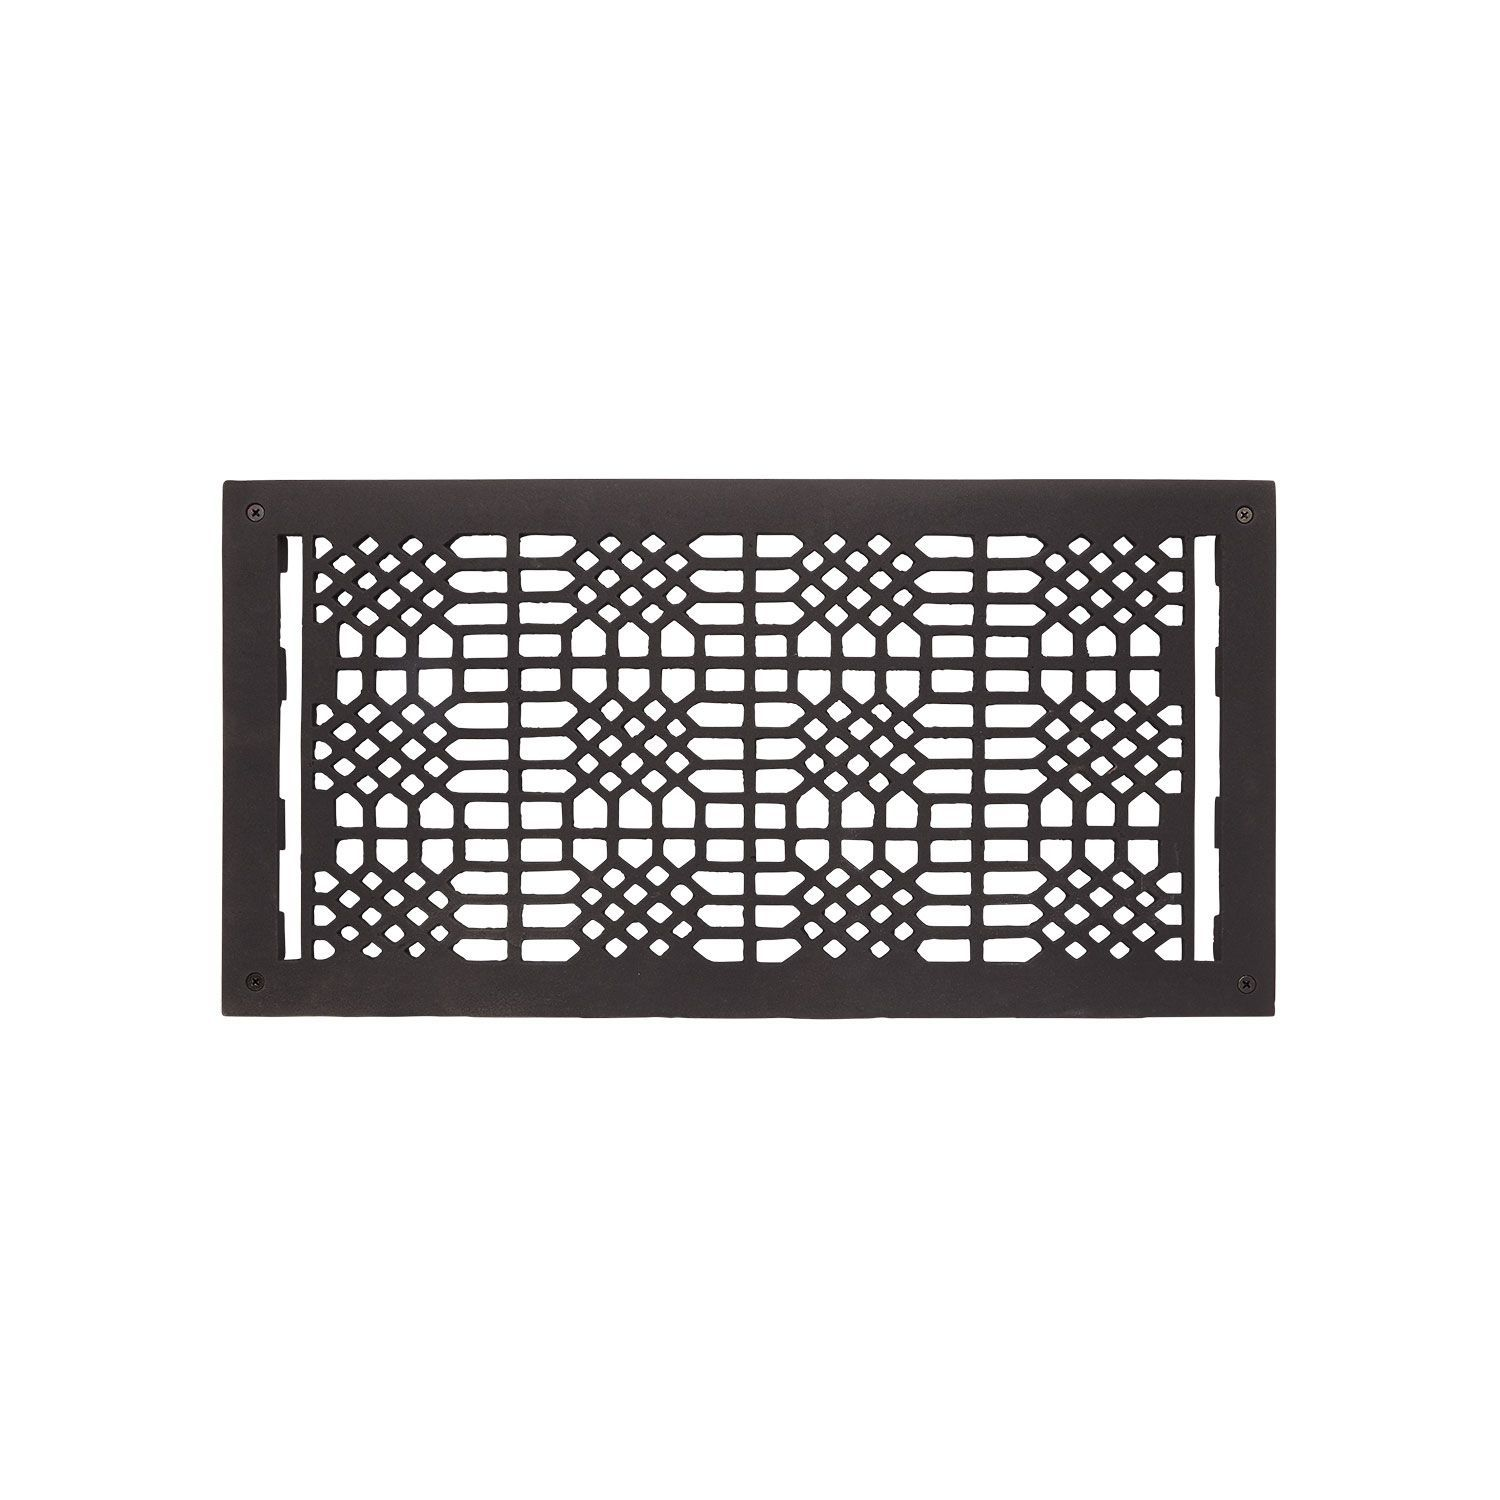 Cast Iron Wall Air Return Grille In 9 X 20 11 X 21 1 4 Overall Signature Hardware In 2020 Iron Wall Air Return Home Improvement